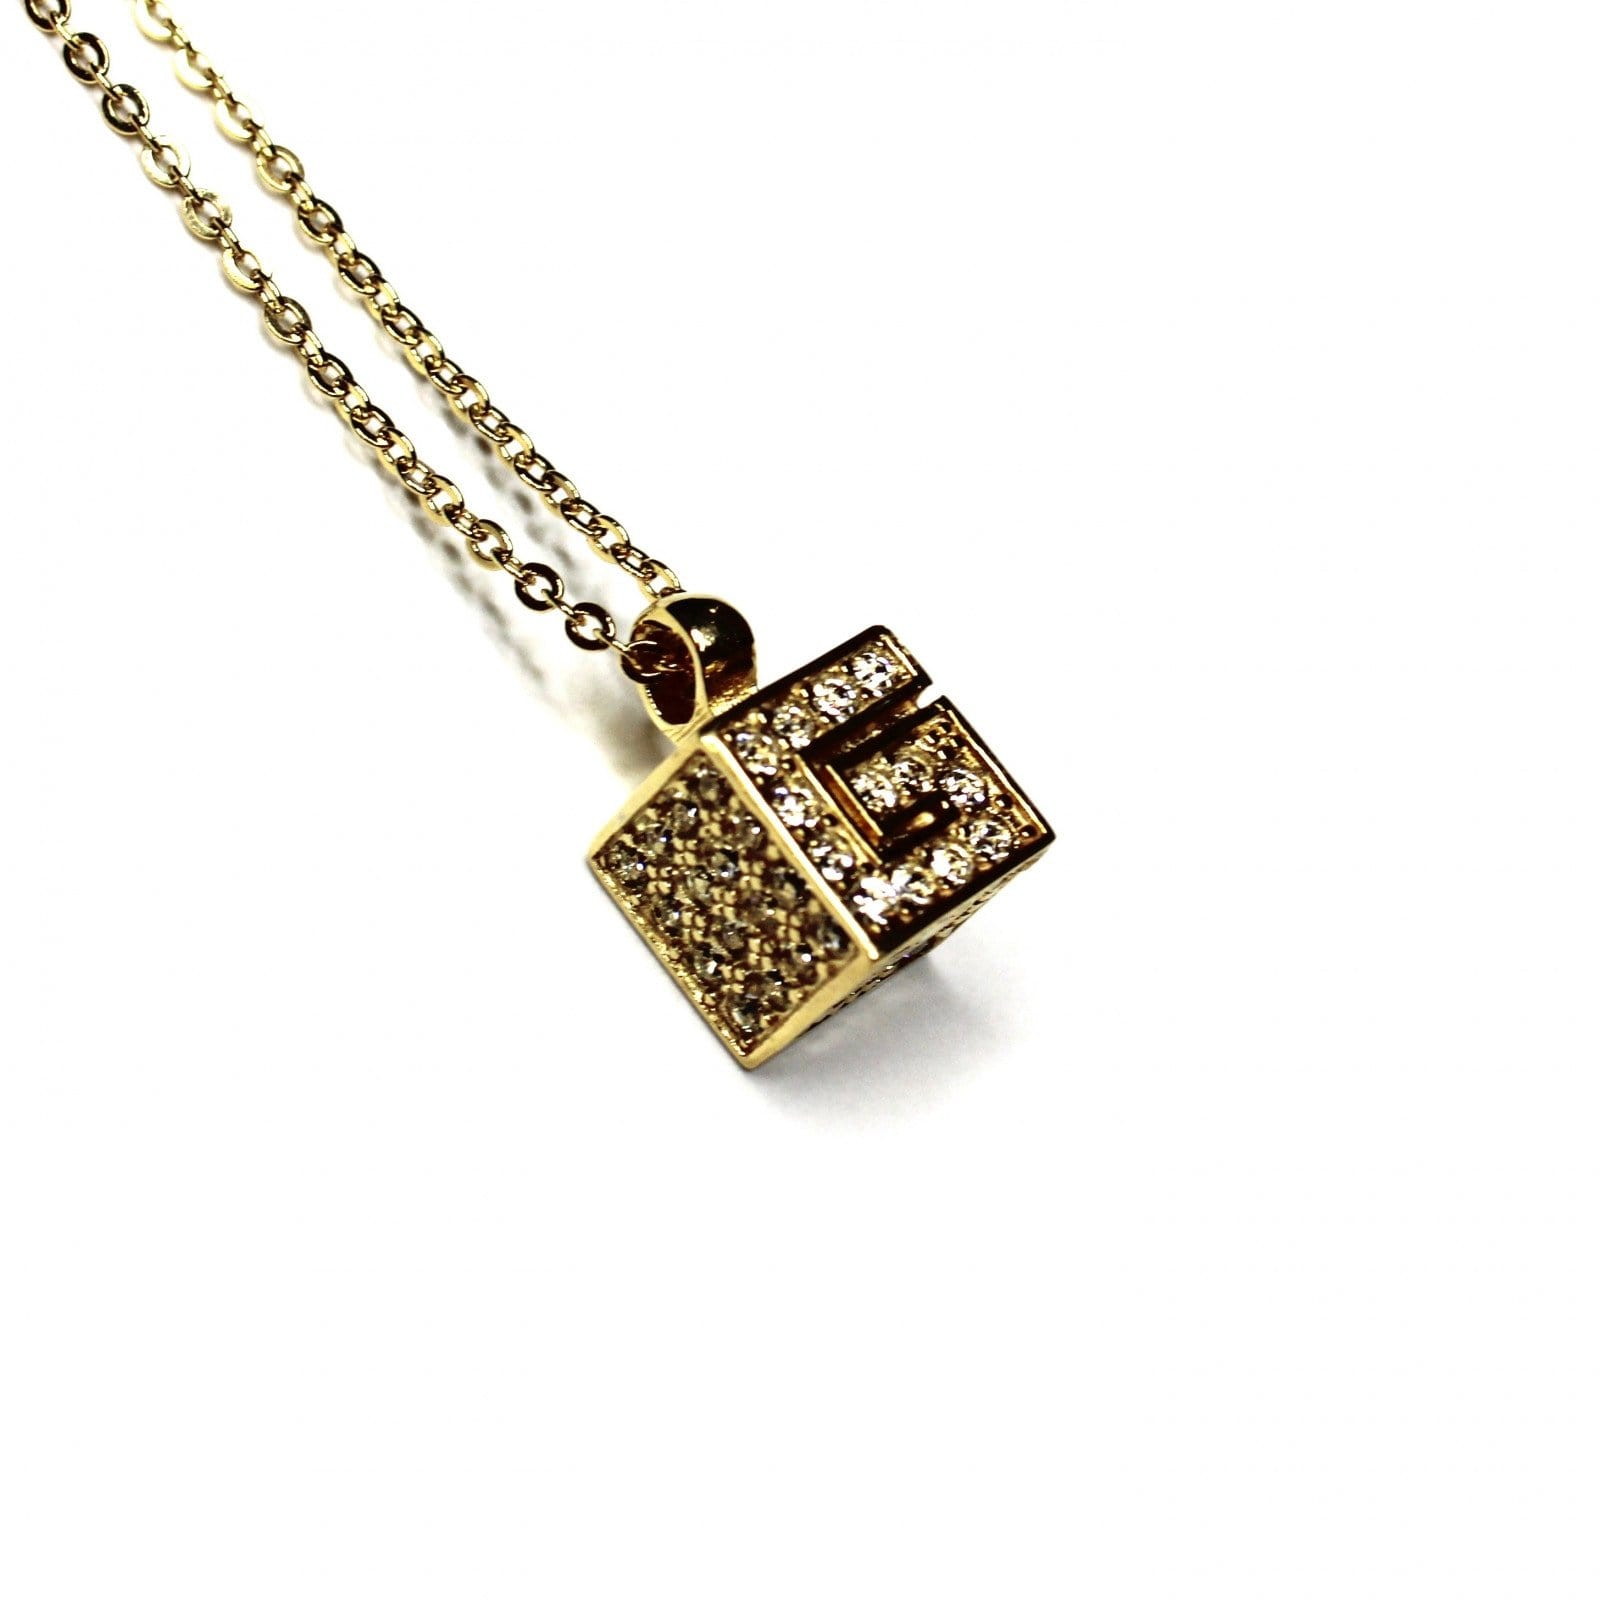 Gold Givenchy G Cube Normal Link Necklace with Crystal Accents RSTKD Vintage